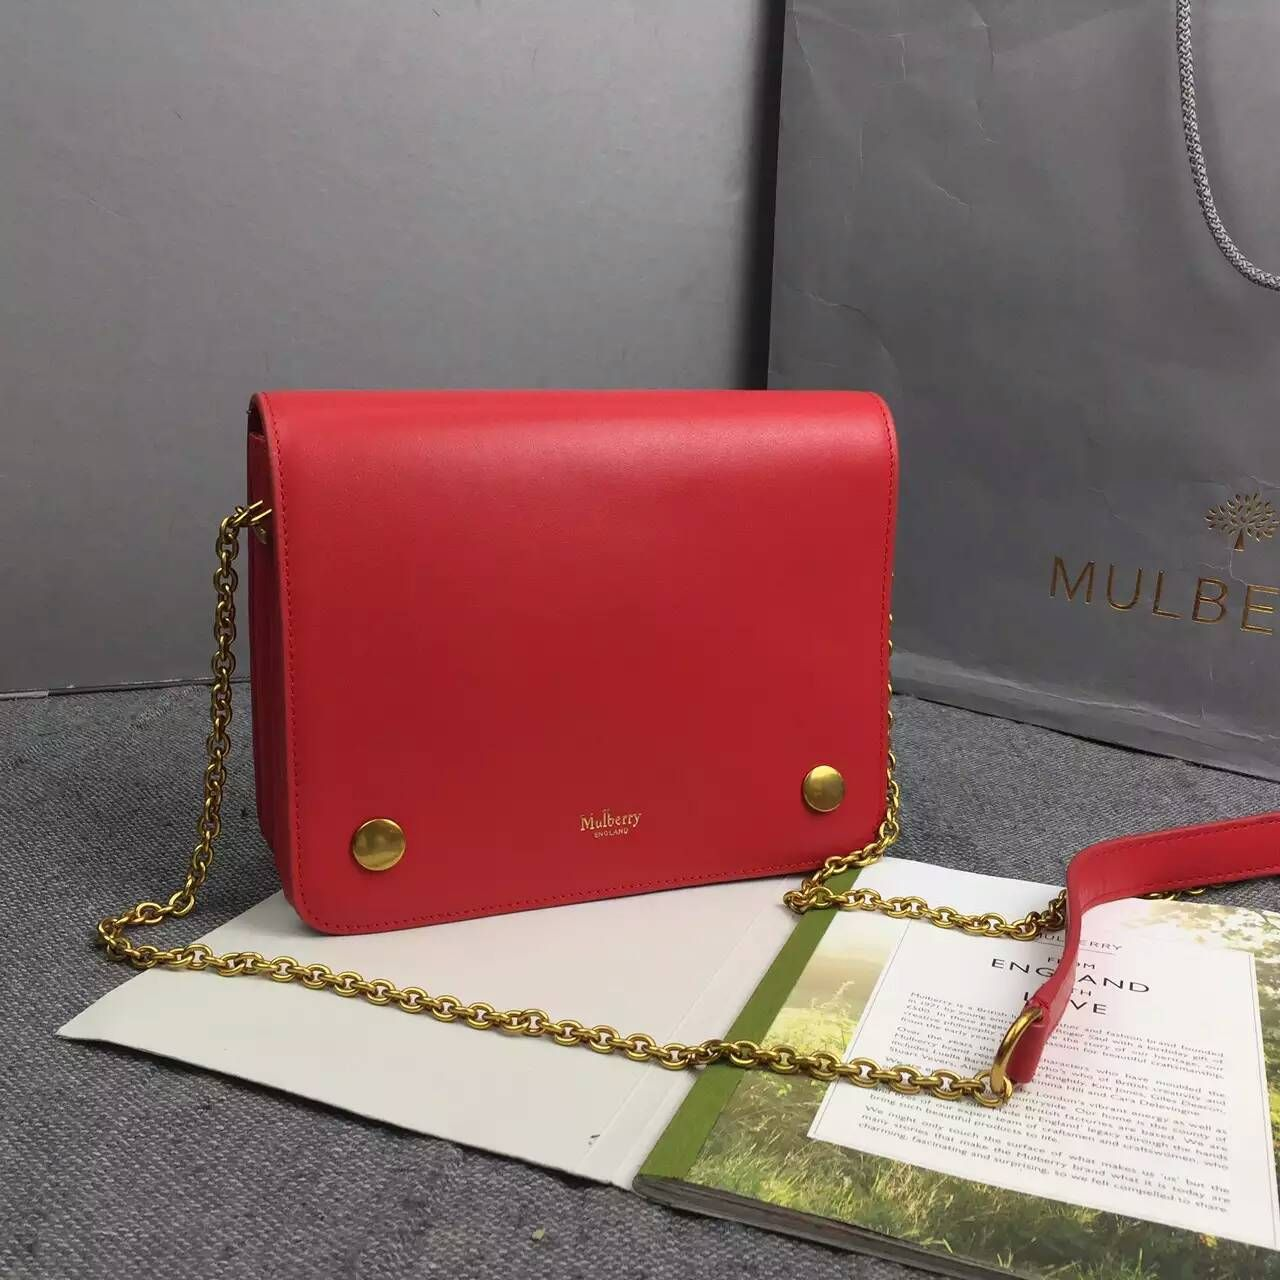 3f342af6c84c 2016 SS Mulberry Small Clifton in red Small Classic Grain